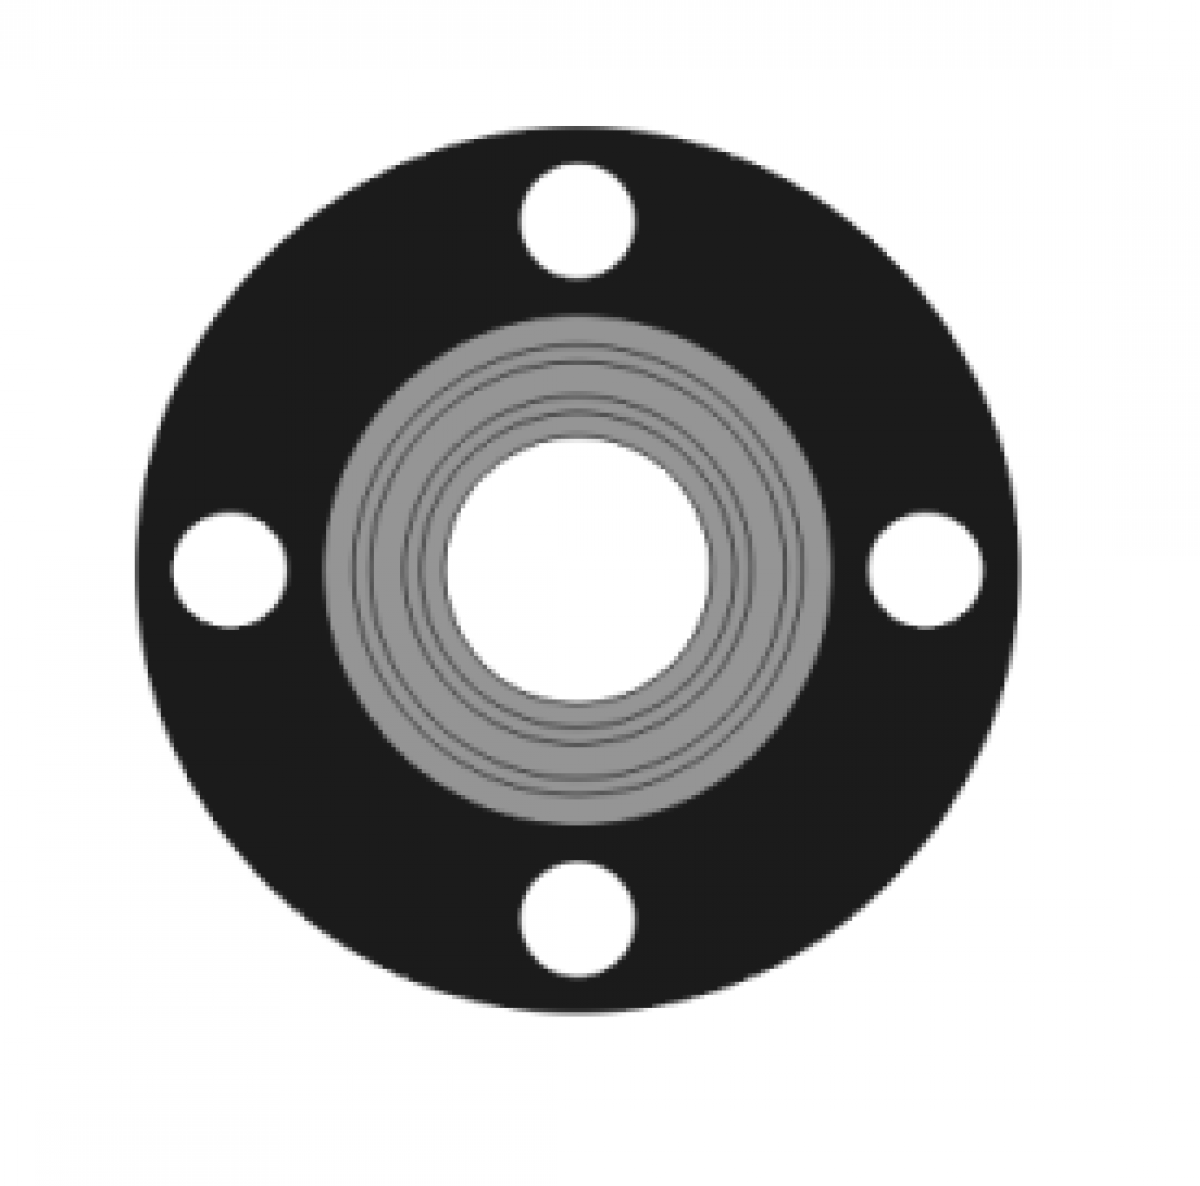 Ptfe Bonded Epdm Rubber Gaskets Phelps Industrial Products